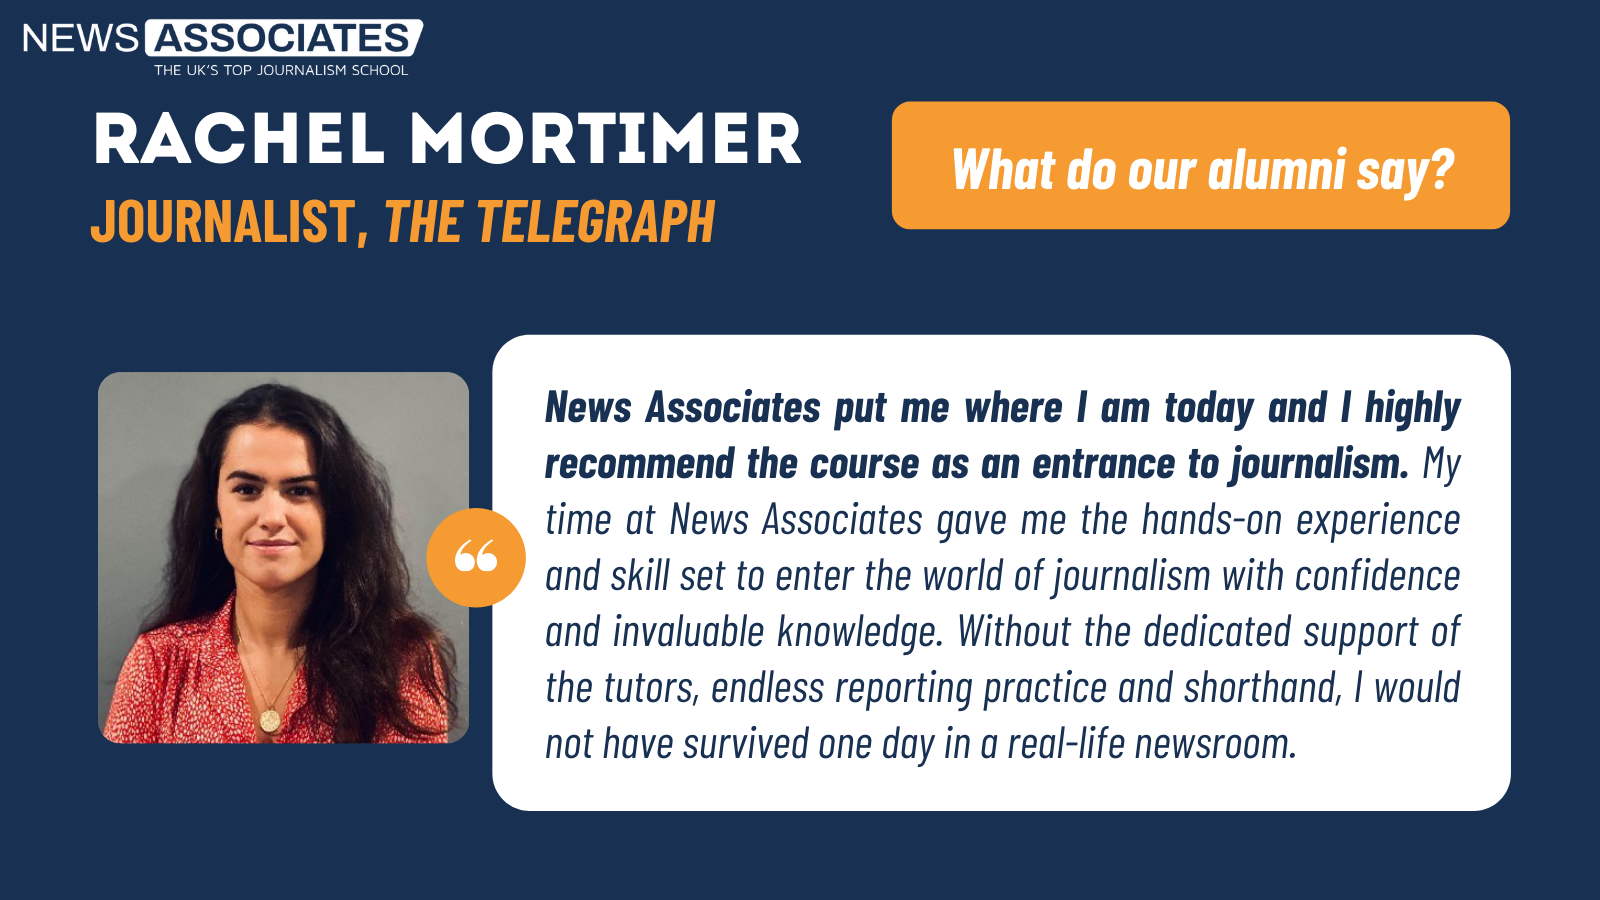 Telegraph journalist Rachel Mortimer's testimonial: News Associates put me where I am today and I highly recommend the course as an entrance to journalism. My time at News Associates gave me the hands-on experience and skill set to enter the world of journalism with confidence and invaluable knowledge. Without the dedicated support of the tutors, endless reporting practice and shorthand, I would not have survived one day in a real-life newsroom.